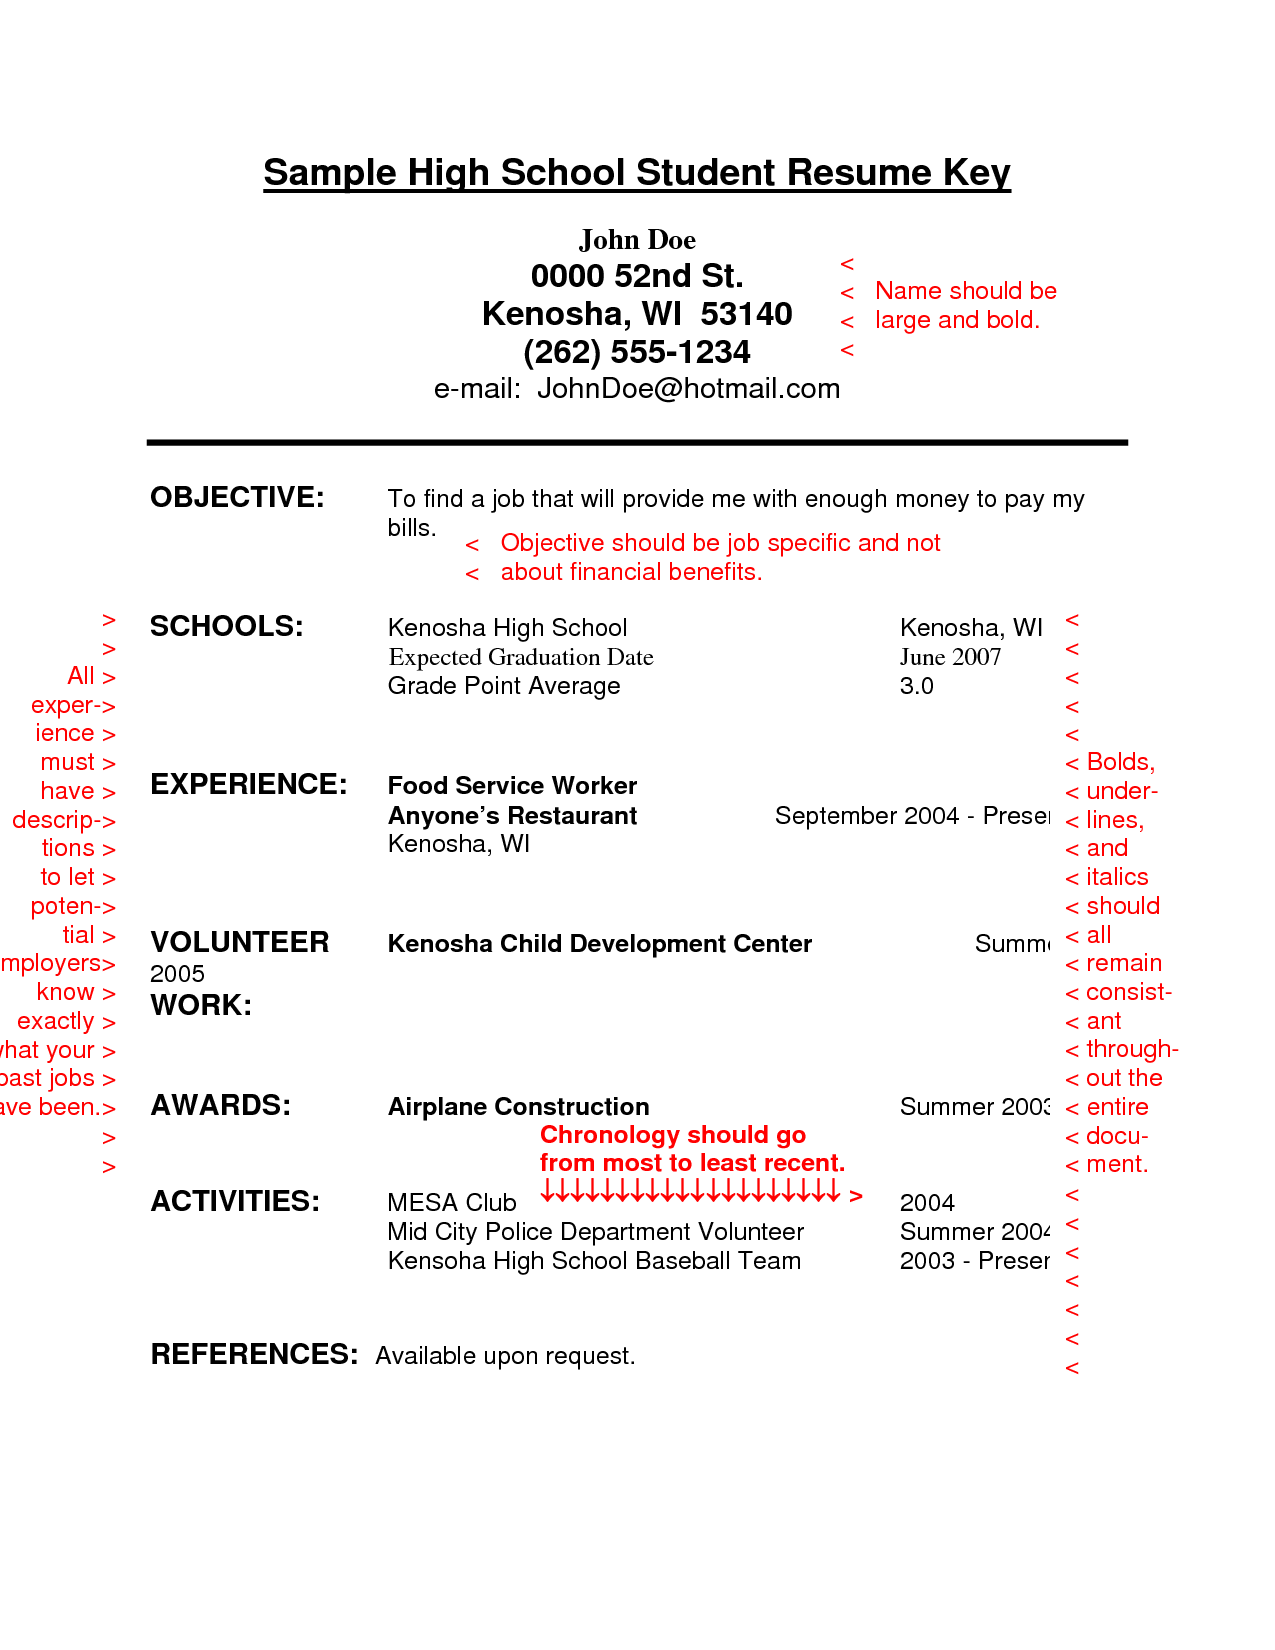 Resume Template High School Student Resume Sample For High School Students With No Experience  Http